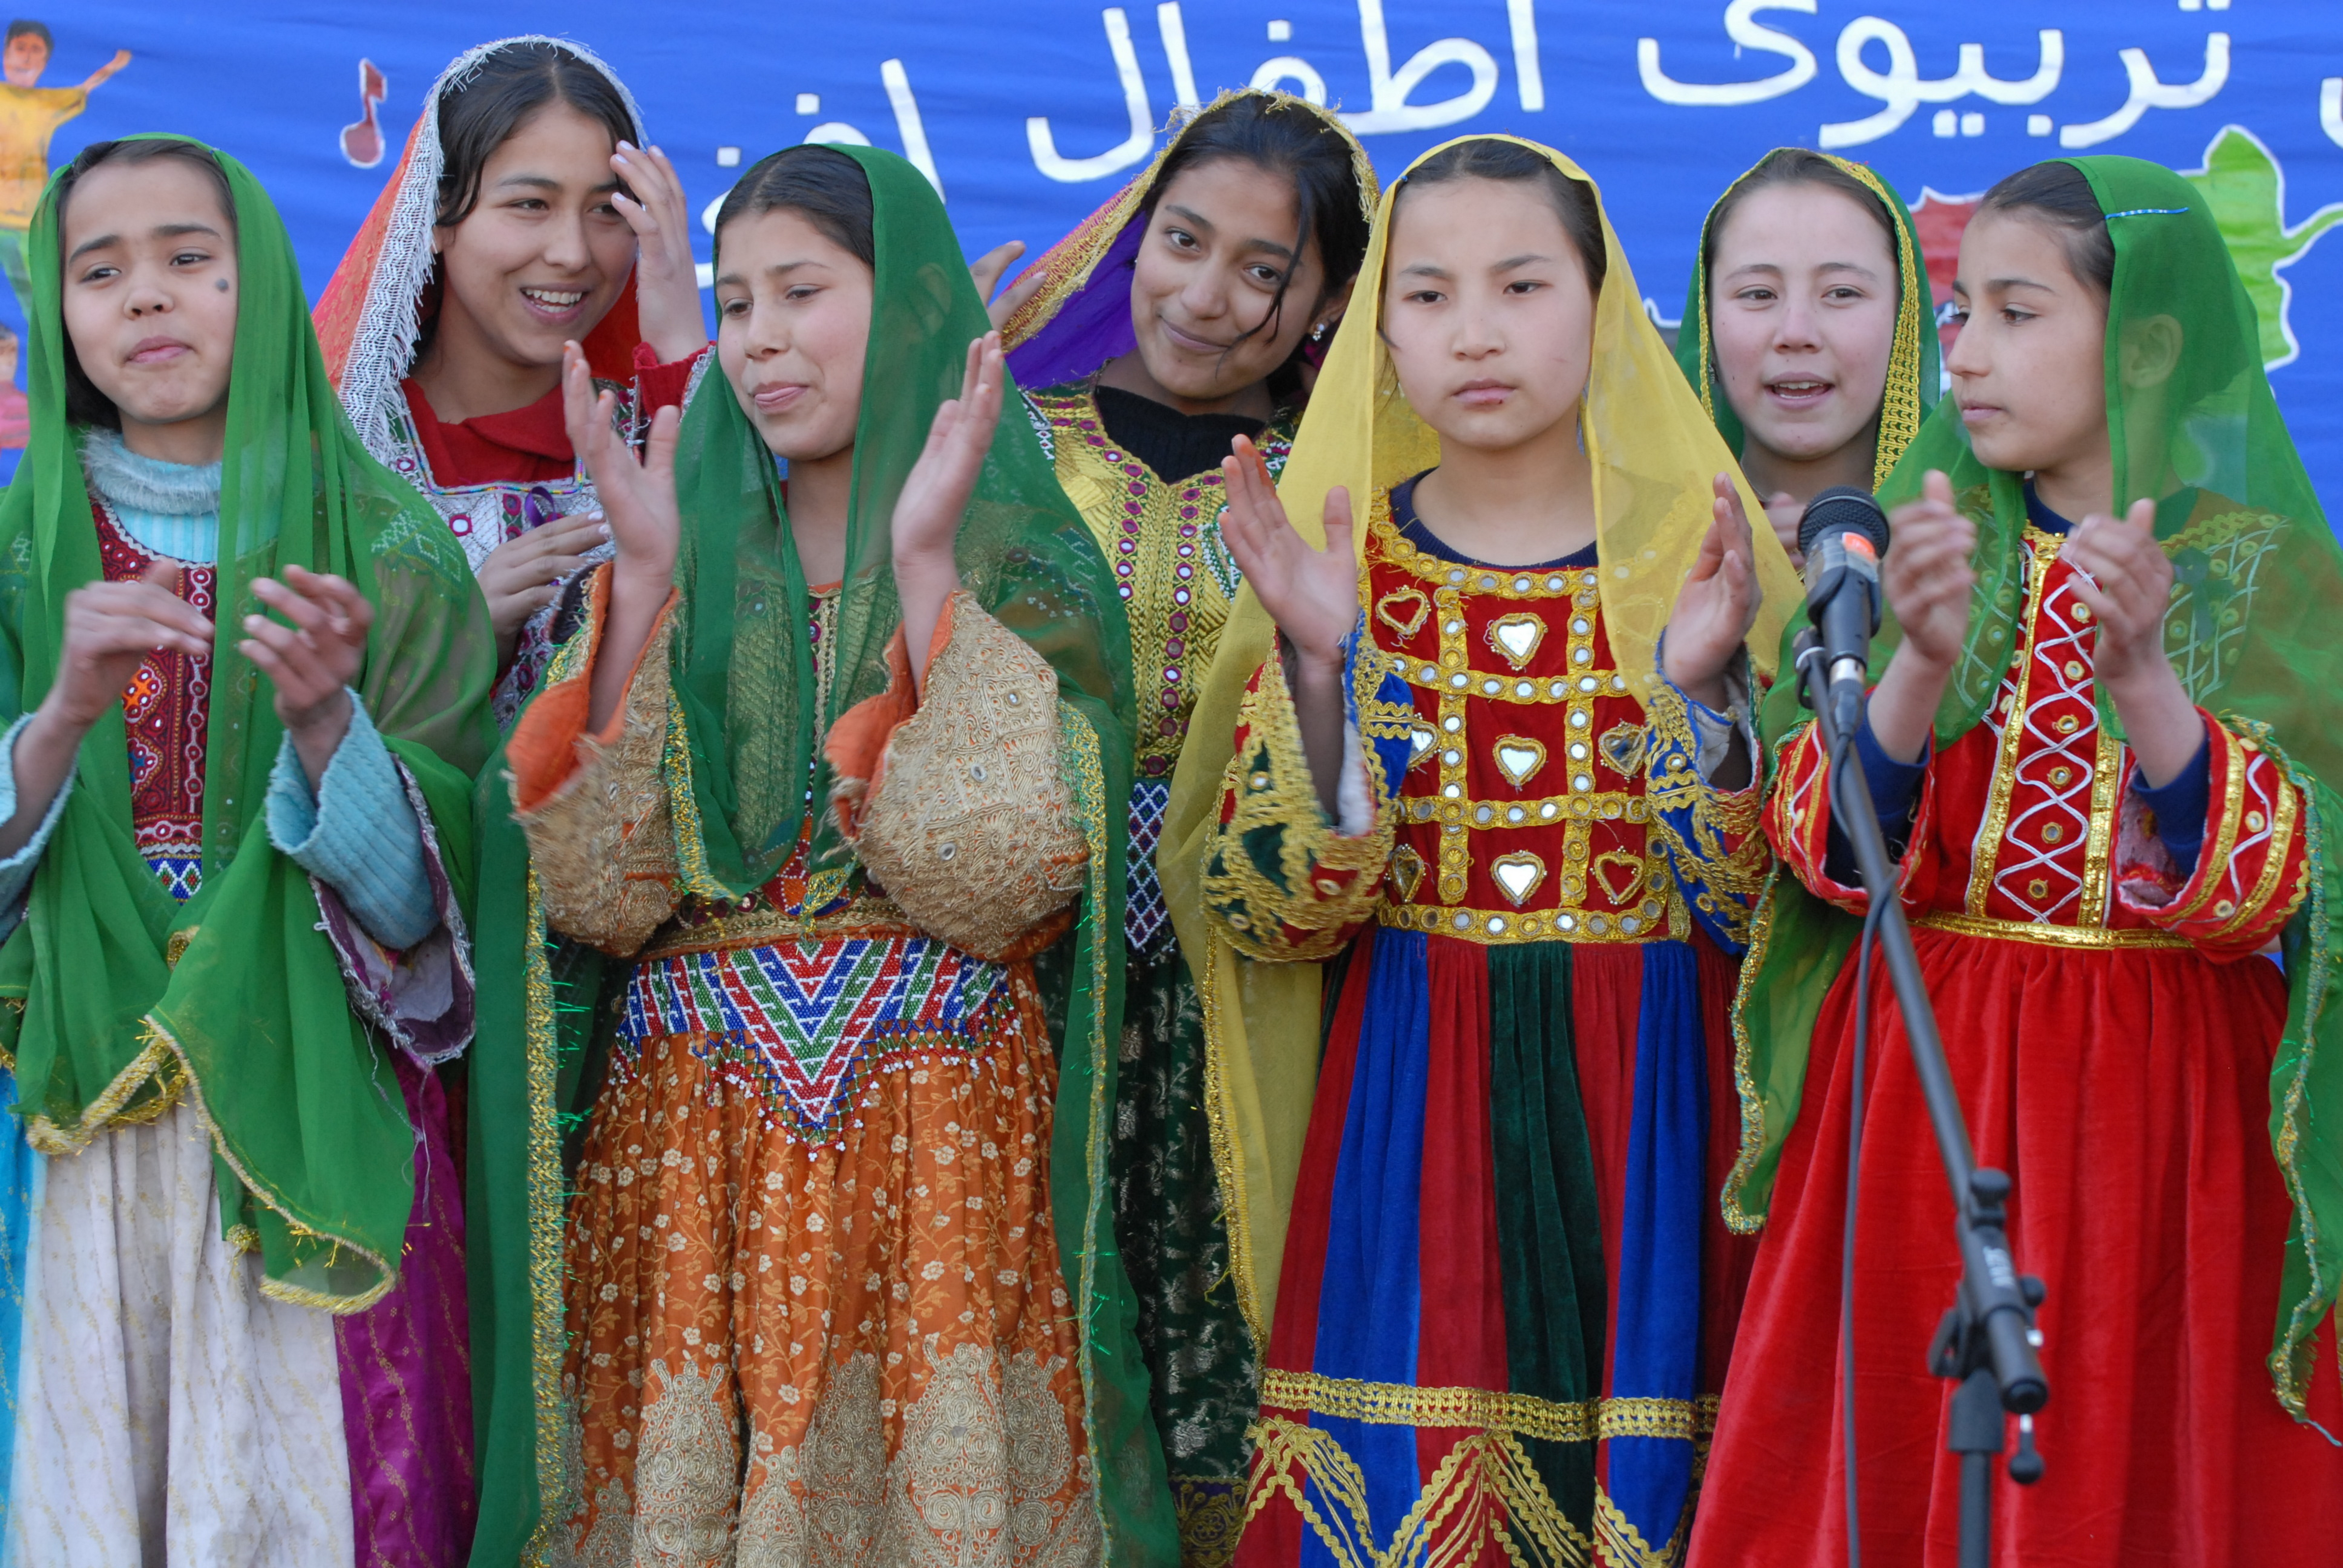 In Case You Missed It: Brussels Conference discusses the importance of empowering Afghan women